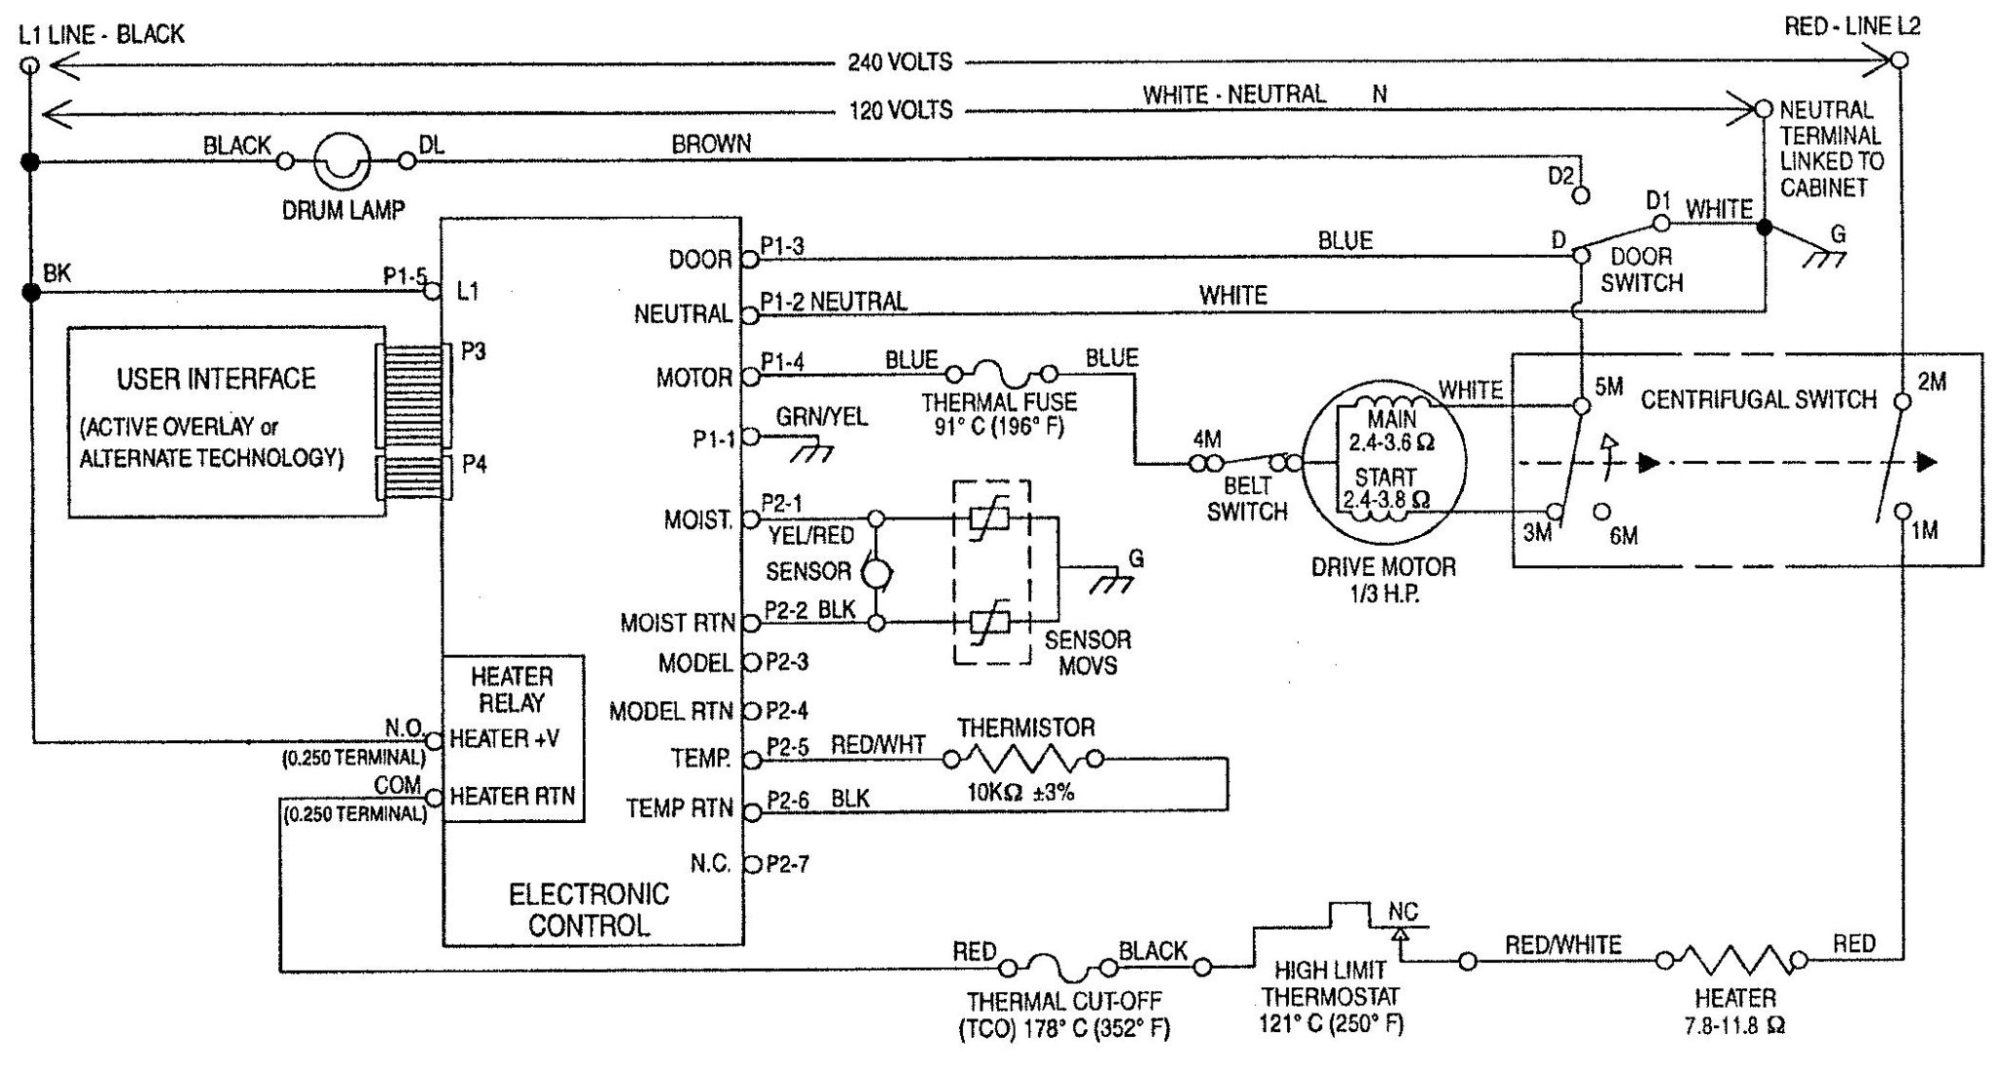 hight resolution of figure 5 80 one manufacturer s schematic that shows the circuitry for the drive motor